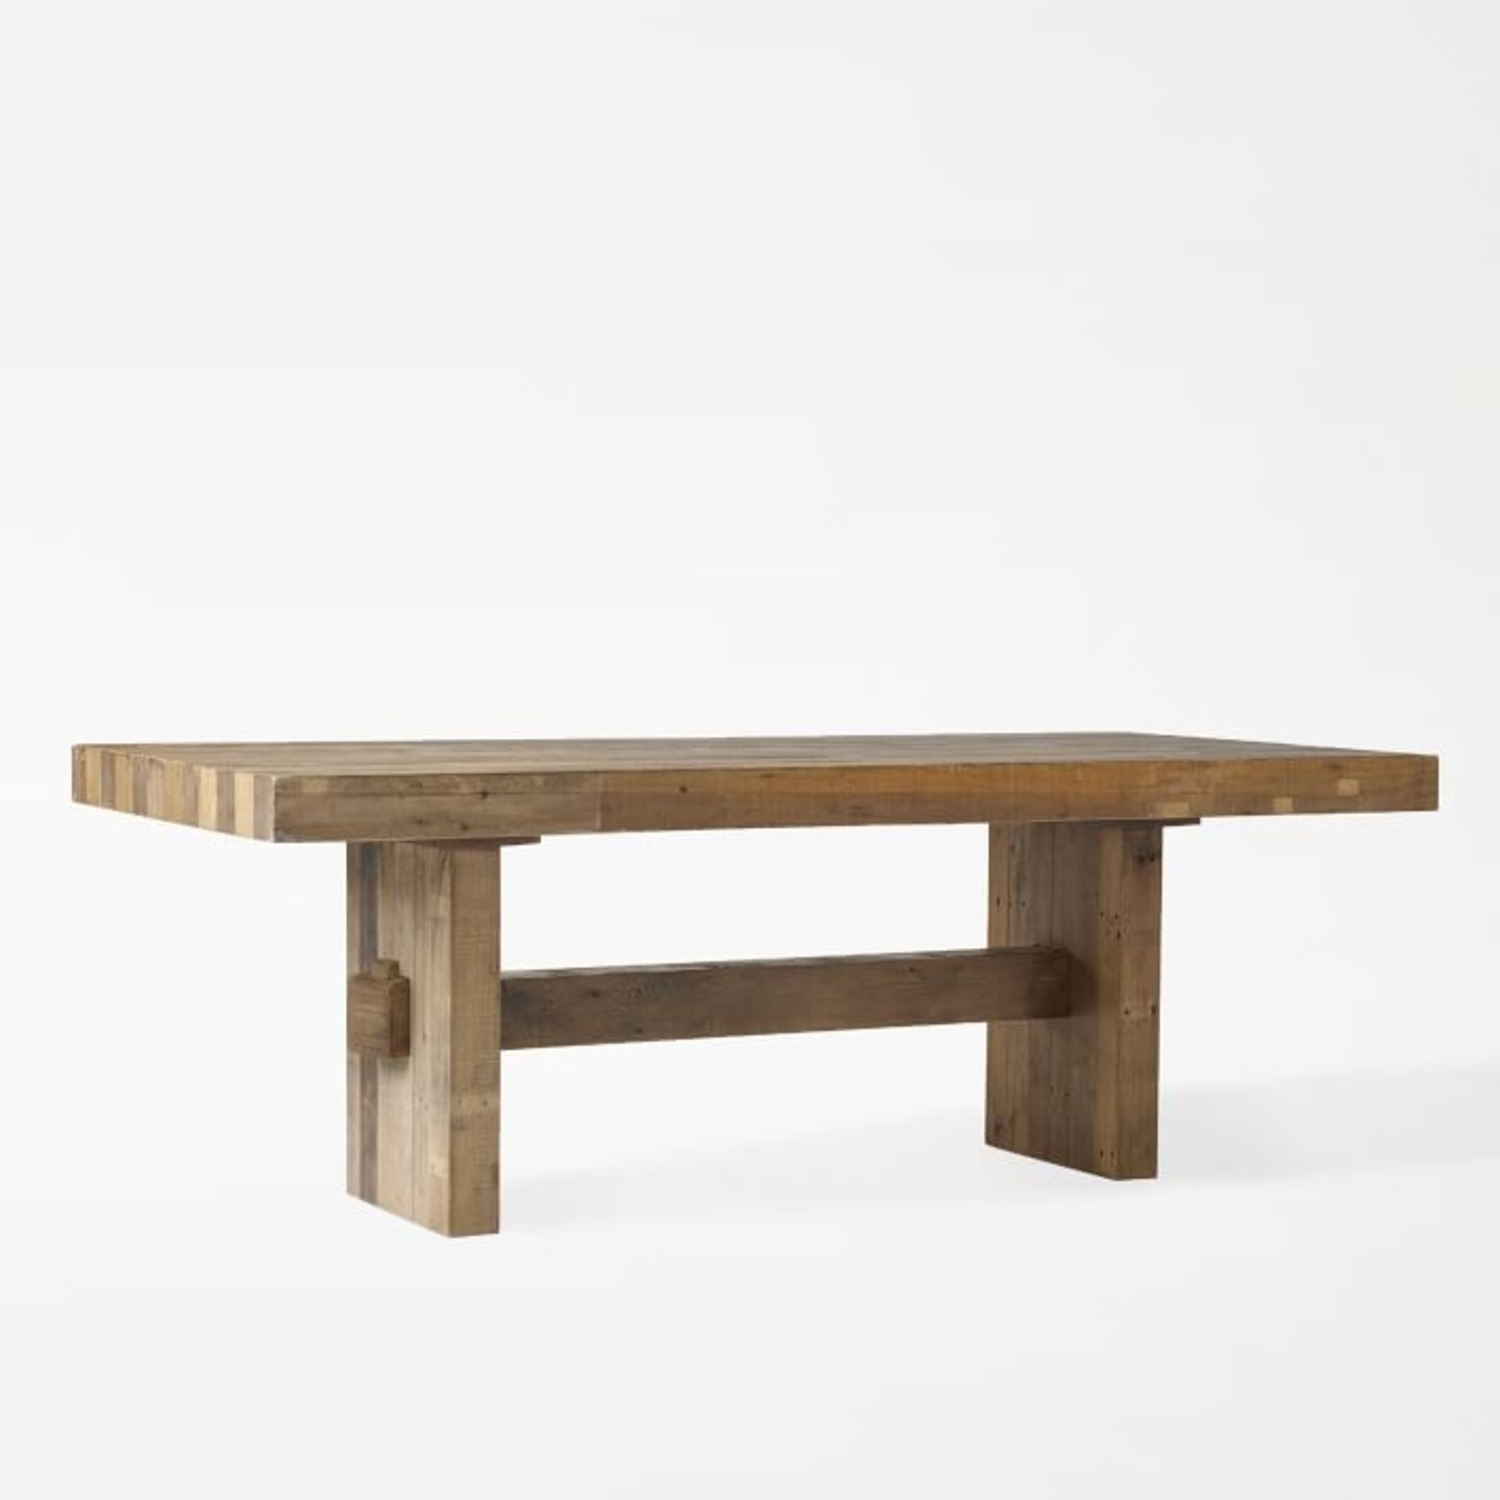 West Elm Emmerson Dining Table - image-3